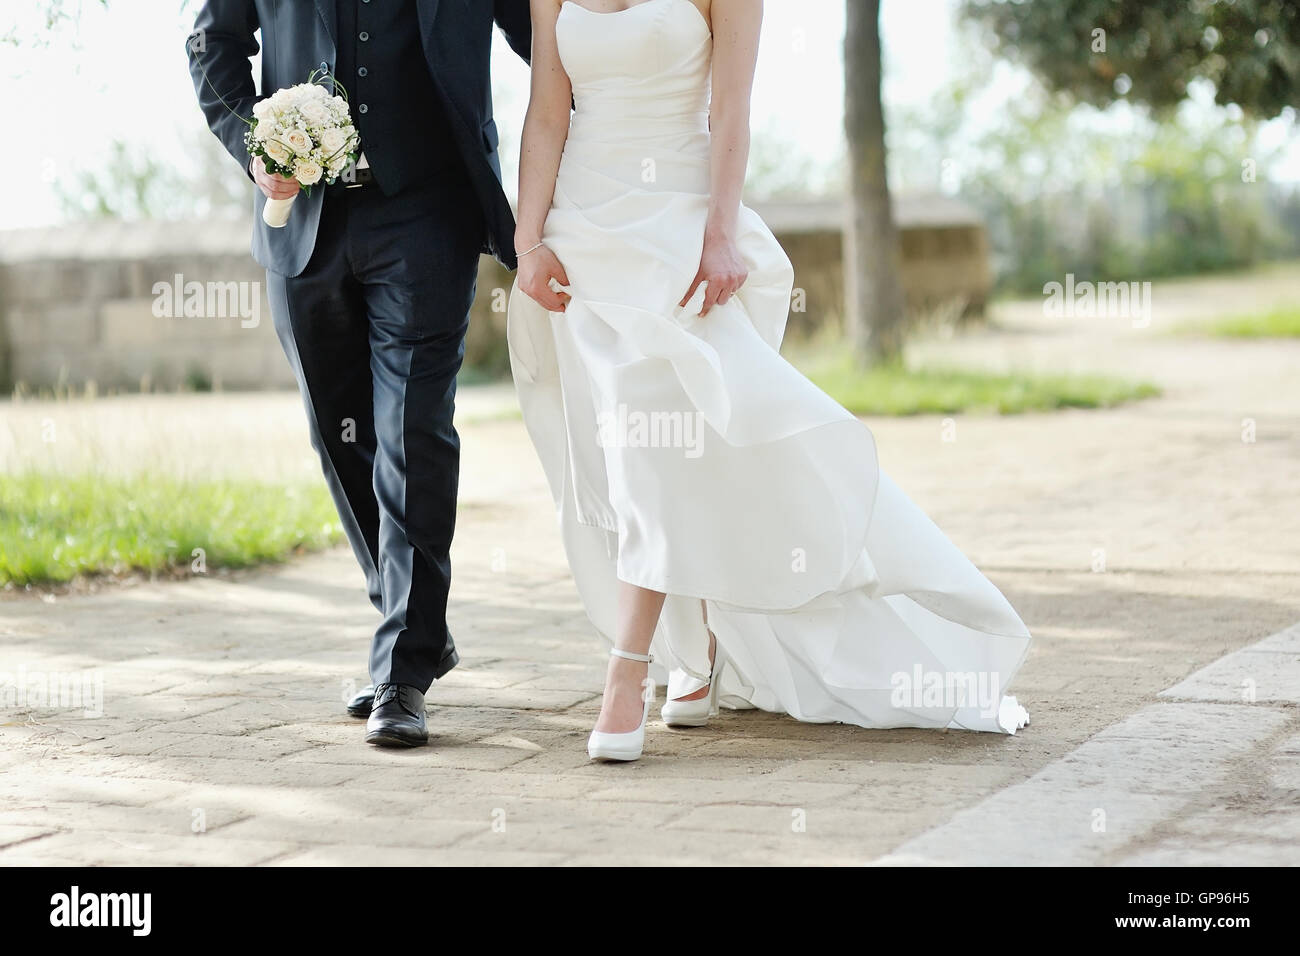 Bride and groom walking together in a park in wedding day - Stock Image